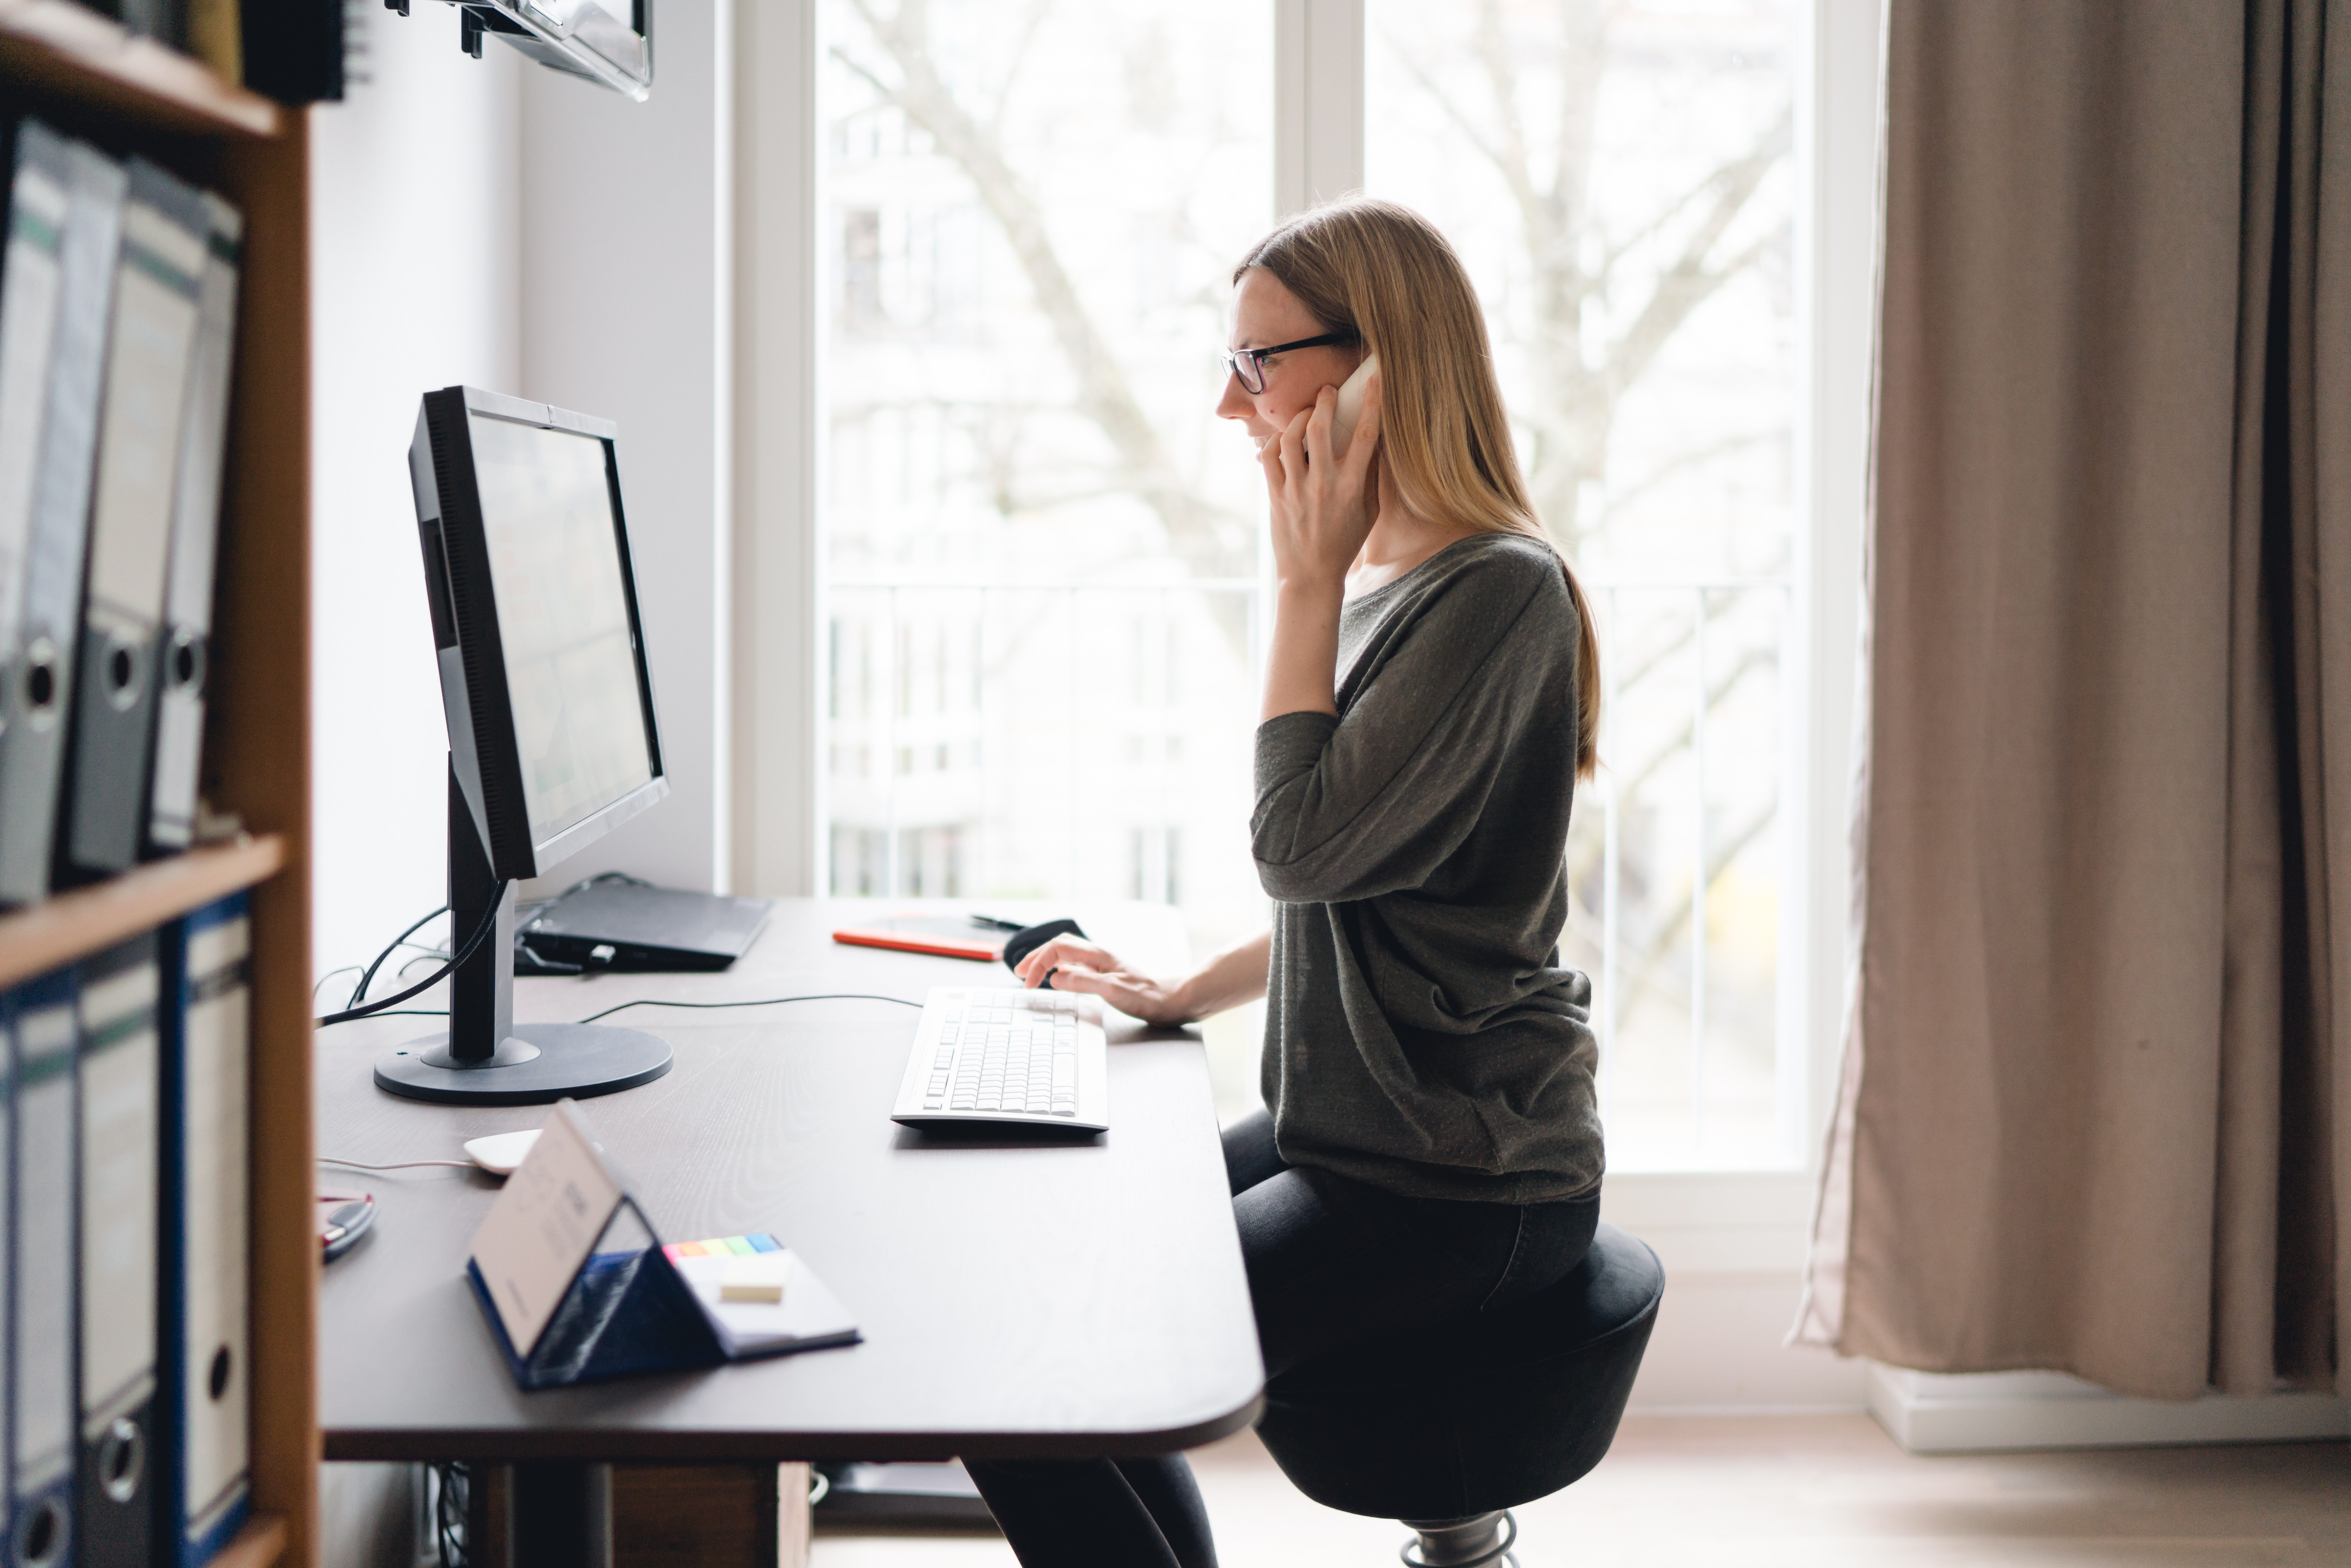 Woman working from home on an ergonomic set up